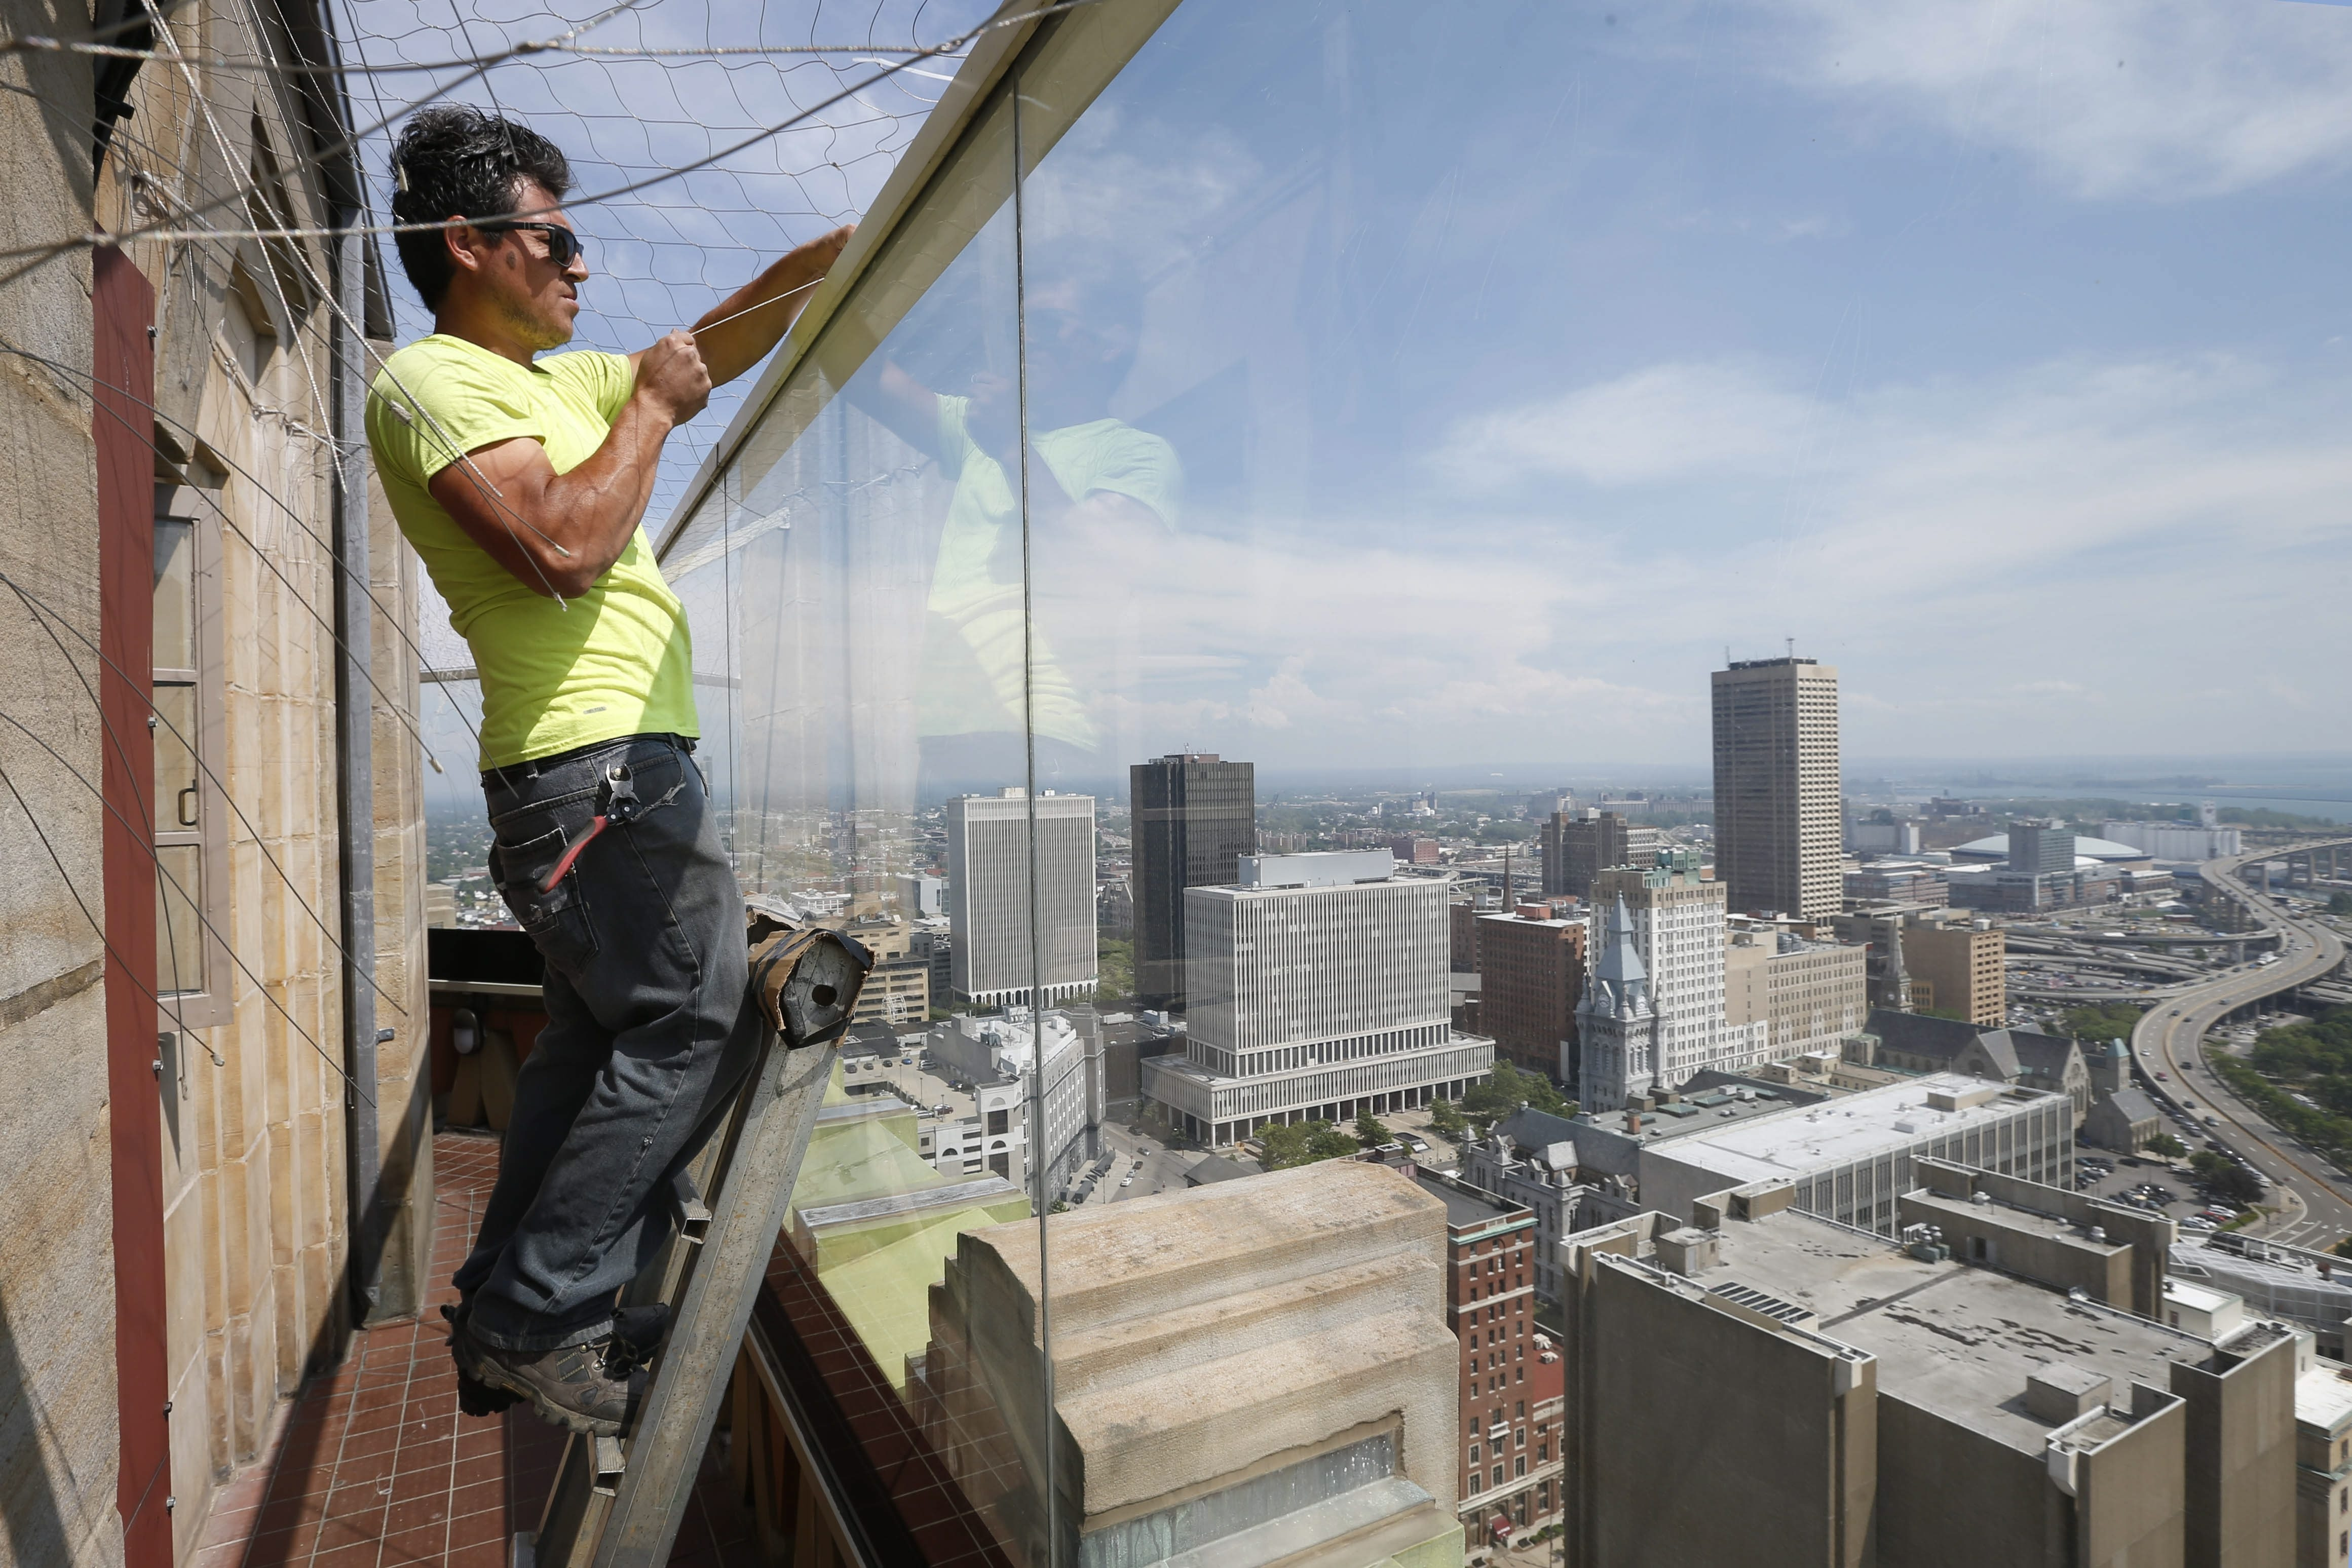 Andres Hernandez of Nets Unlimited installs a wire safety net over the outdoor observation deck on the 28th floor of Buffalo City Hall Monday.